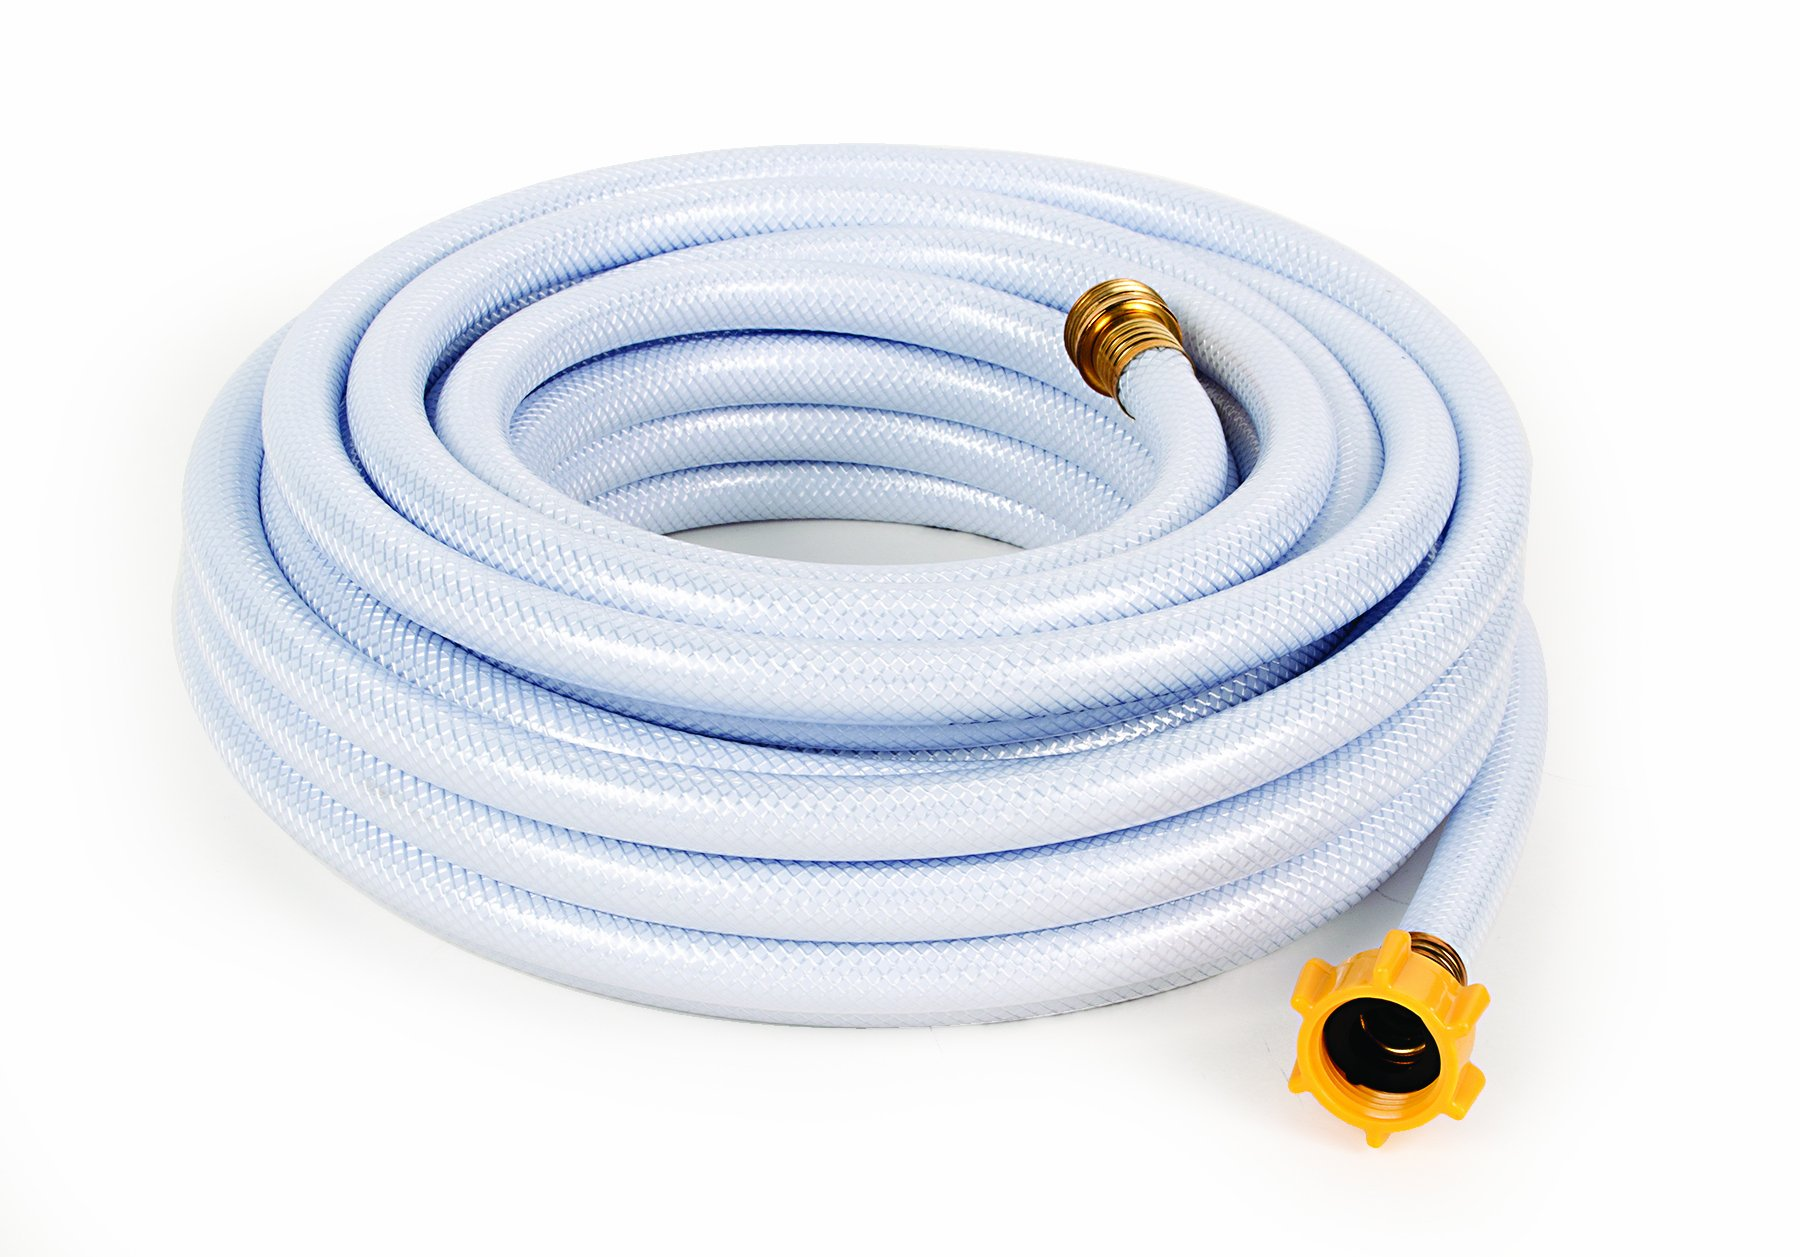 Camco 75ft TastePURE Drinking Water Hose- Lead BPA Free, Reinforced Maximum Kink Resistance 5/8'' Inner Diameter (22803)